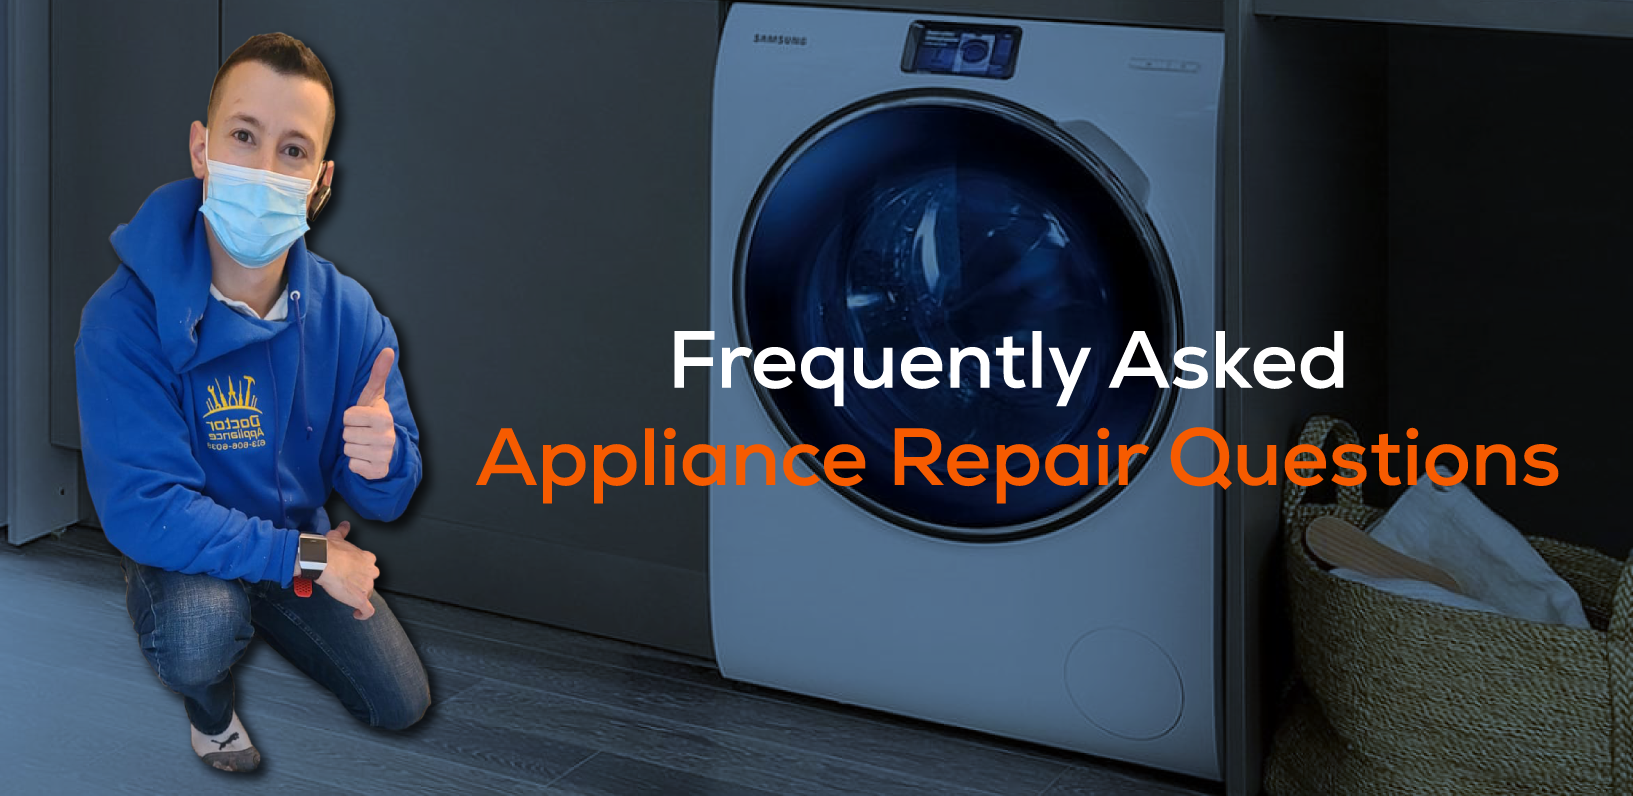 free same day appliance repair service appliance repair questions